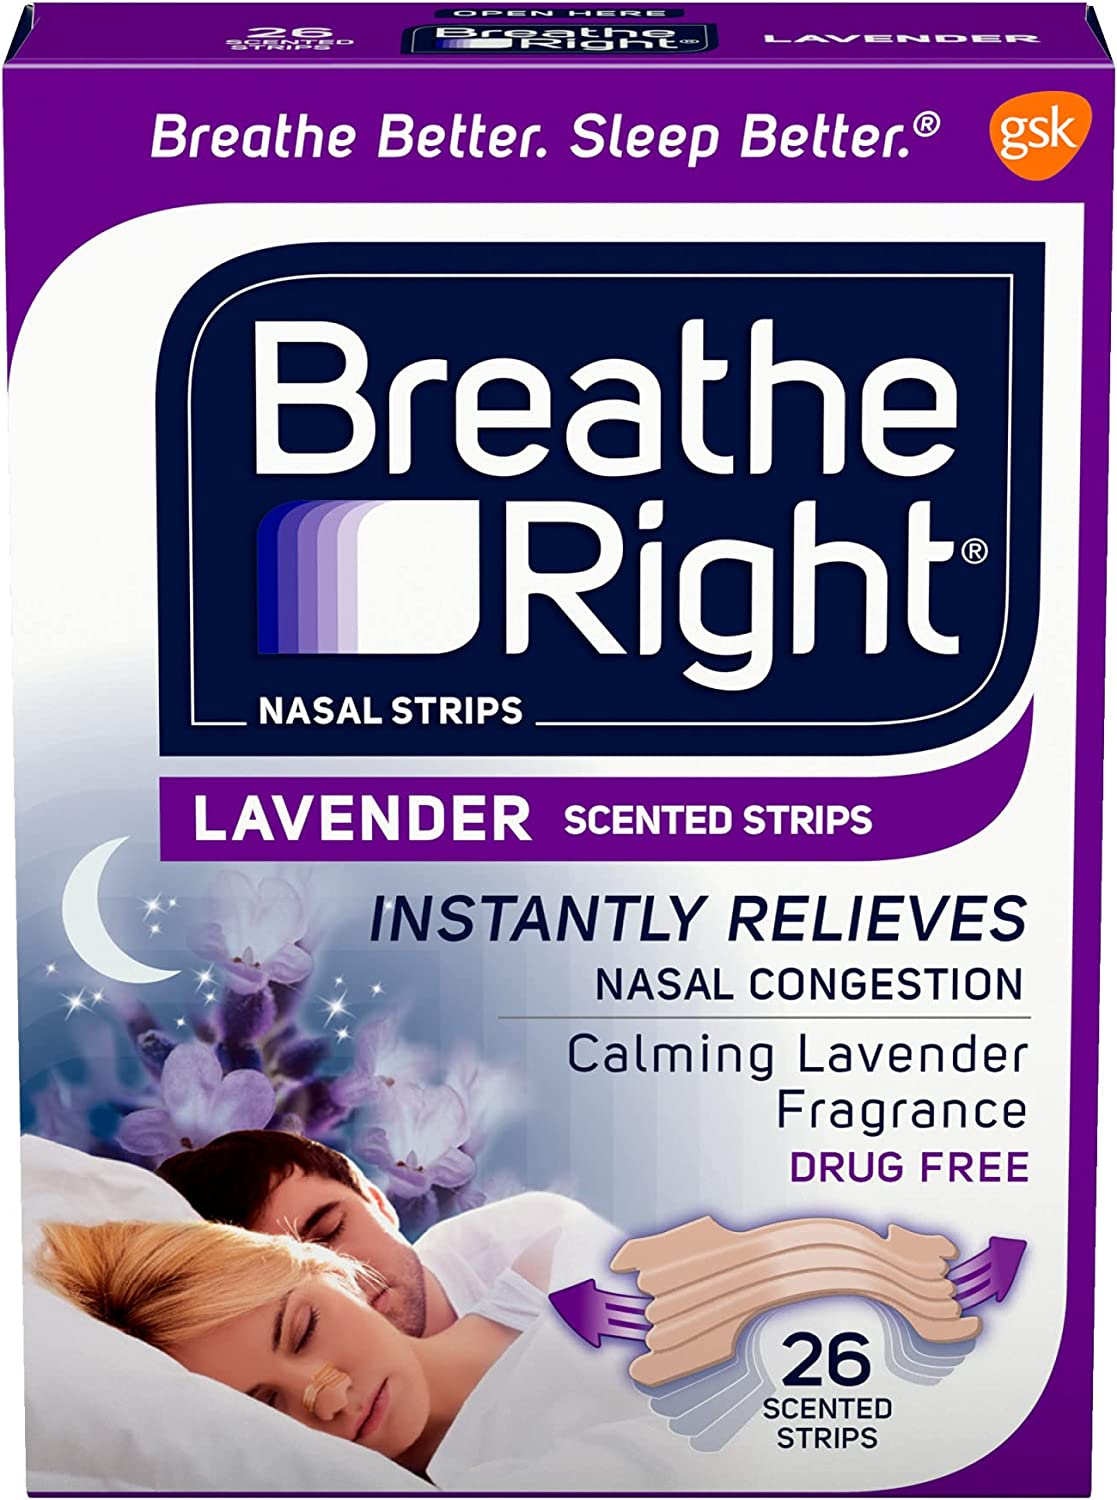 Top 10 Best Anti-Snoring Devices In 2021 For Better Sleep (with 20% off) 19